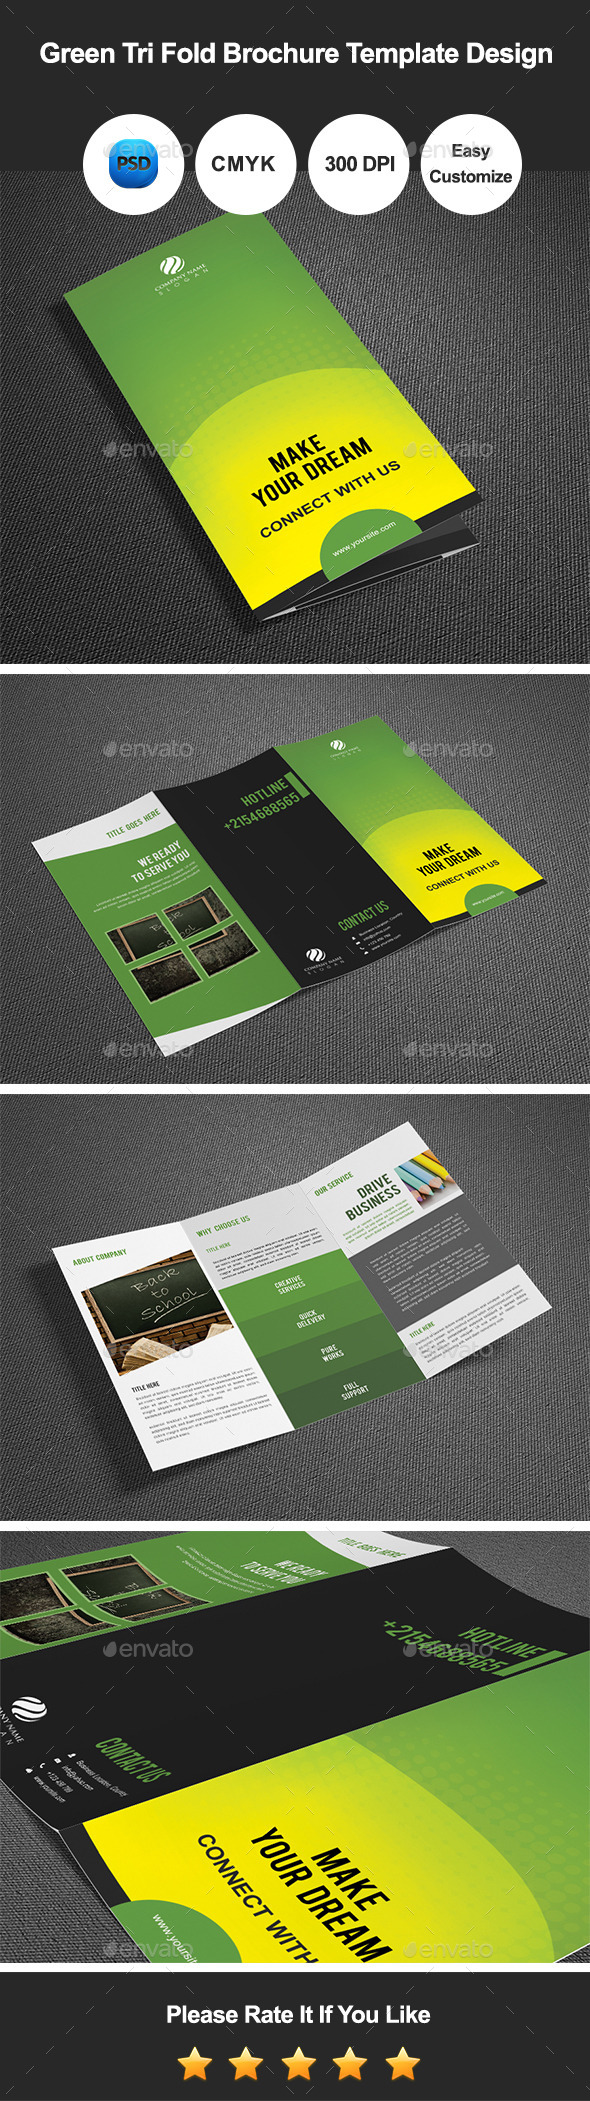 GraphicRiver Green Tri Fold Brochure Template Design 11024449